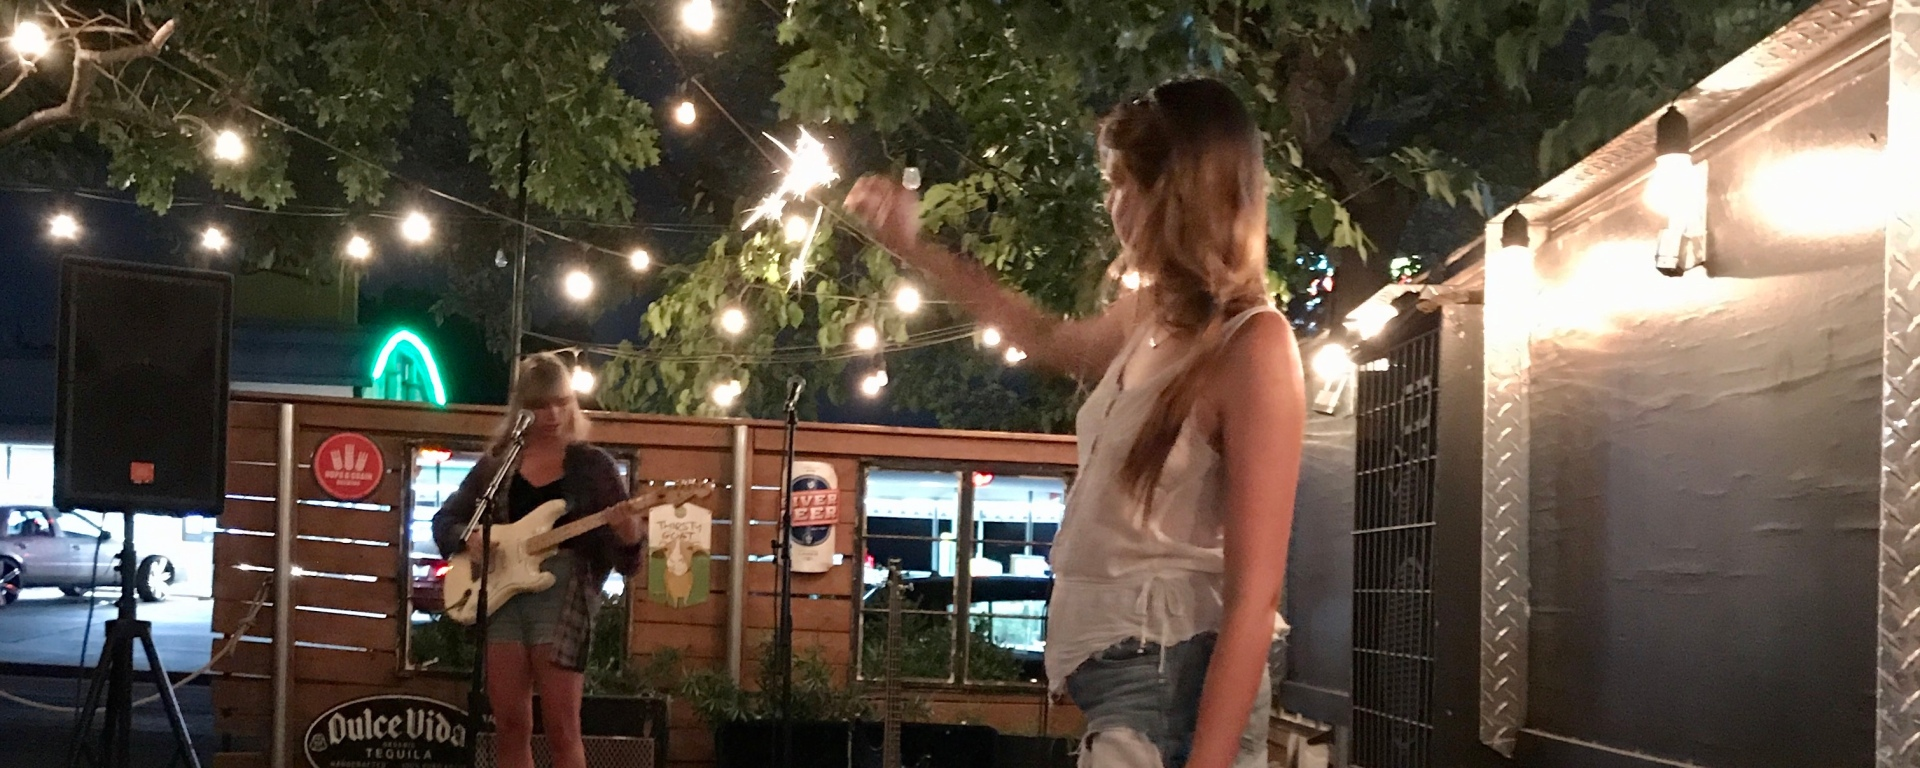 A performer stands with her guitar in the background while a patron stands in foreground holding up a sparkler